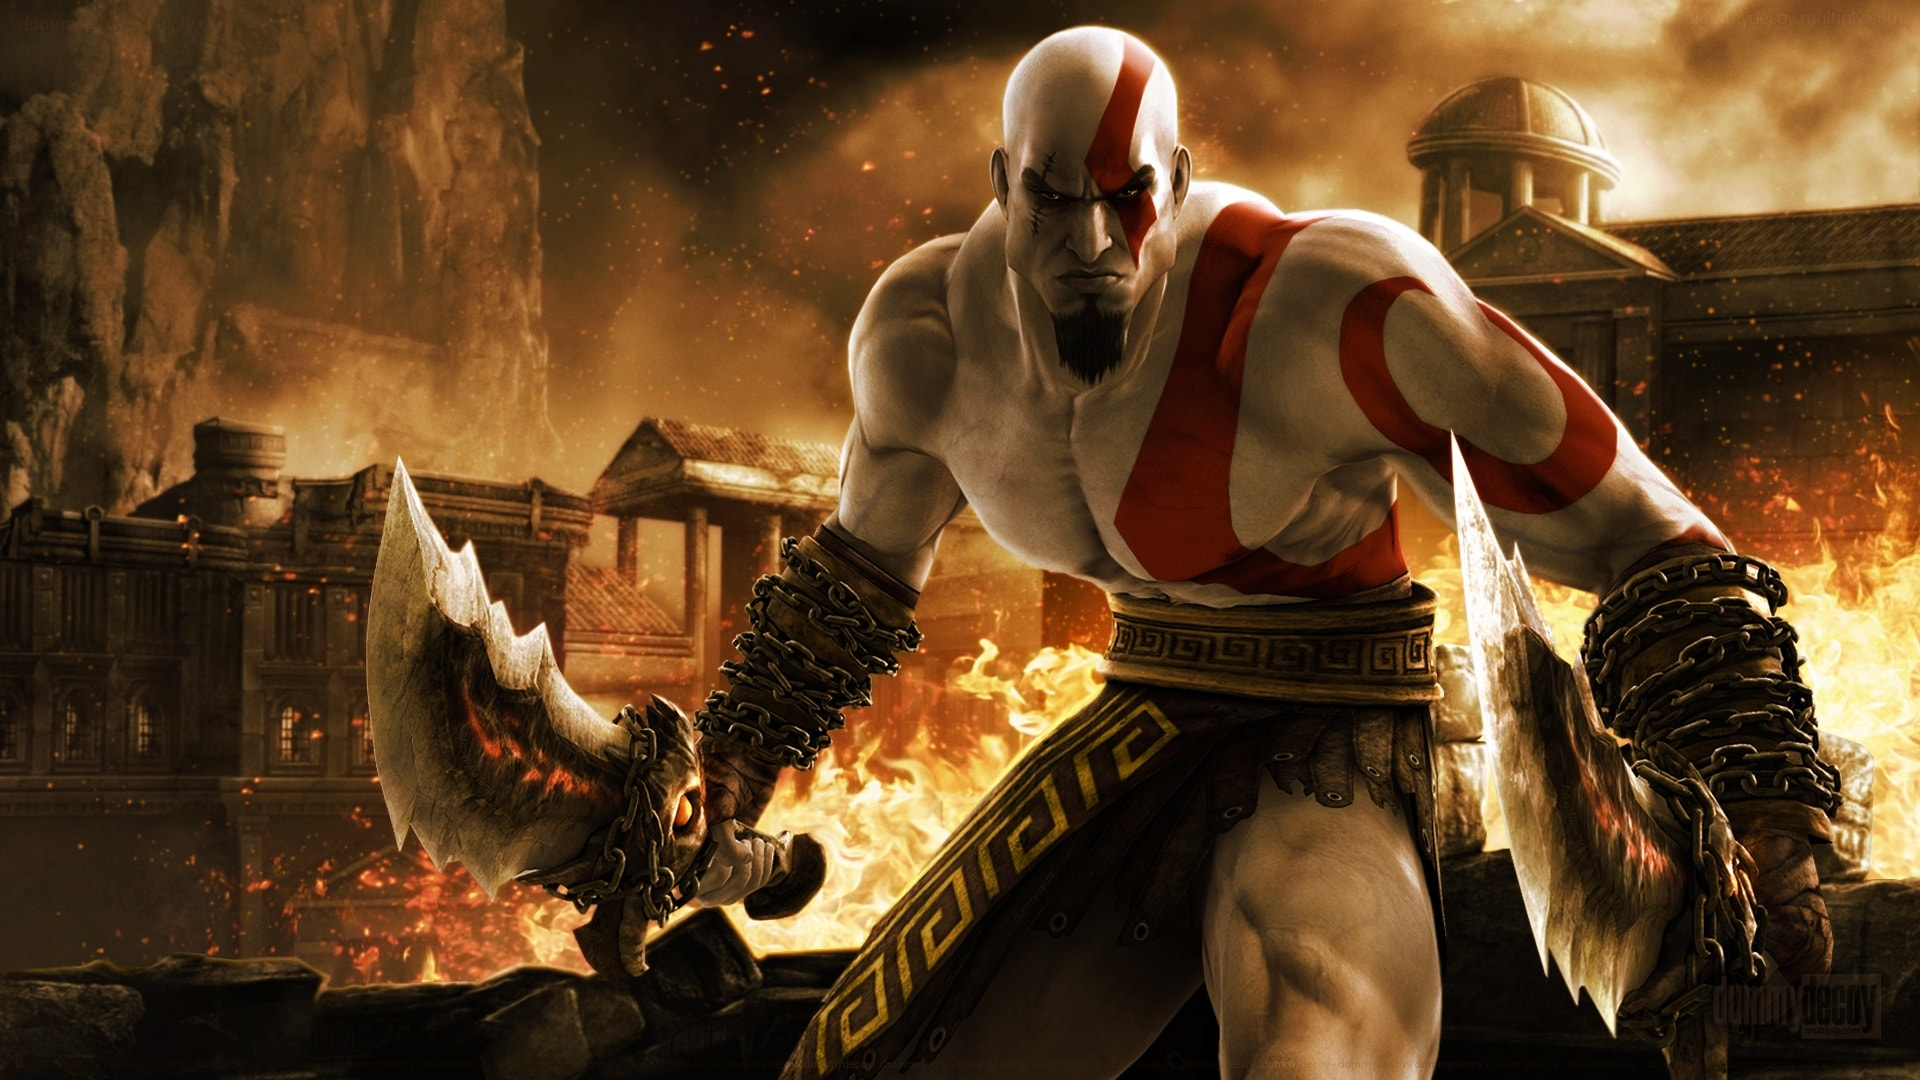 God Of War 2 full hd wallpapers